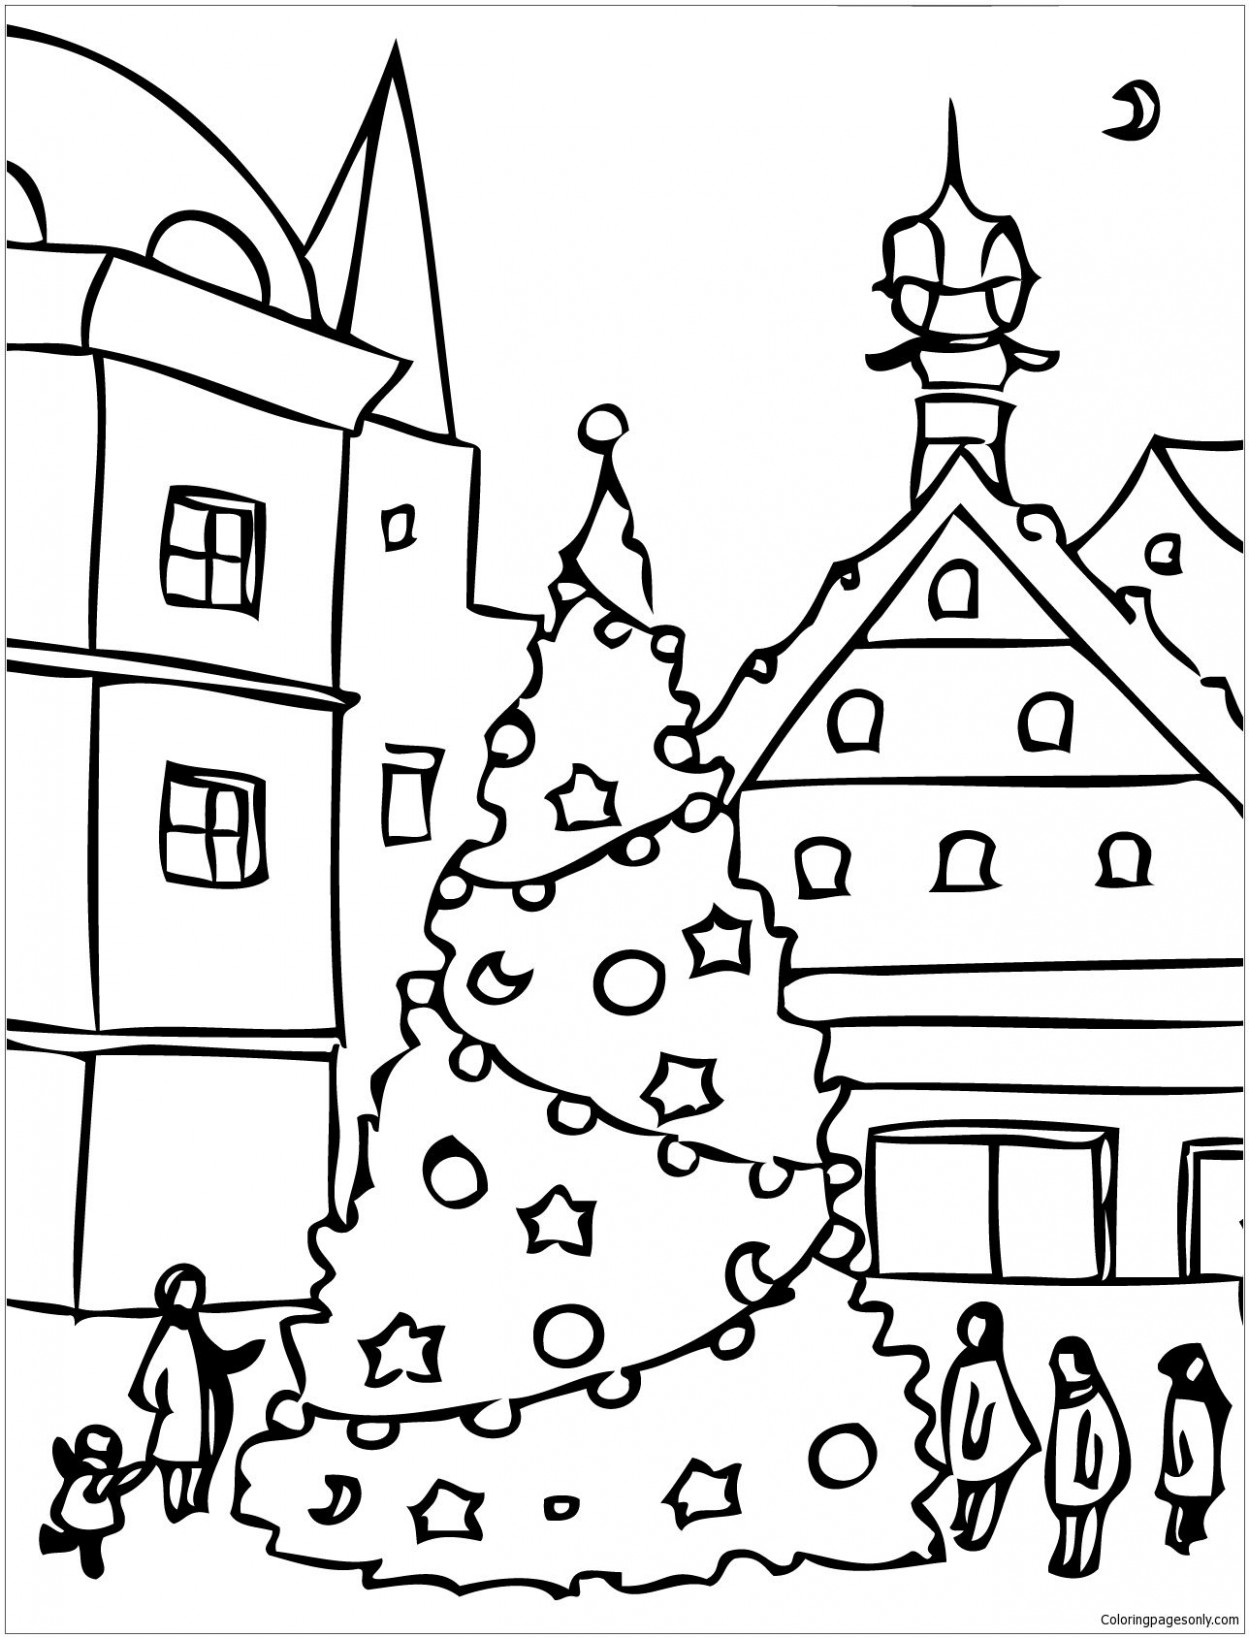 Christmas Day Coloring Page | Christmas Coloring Pages | Christmas ...